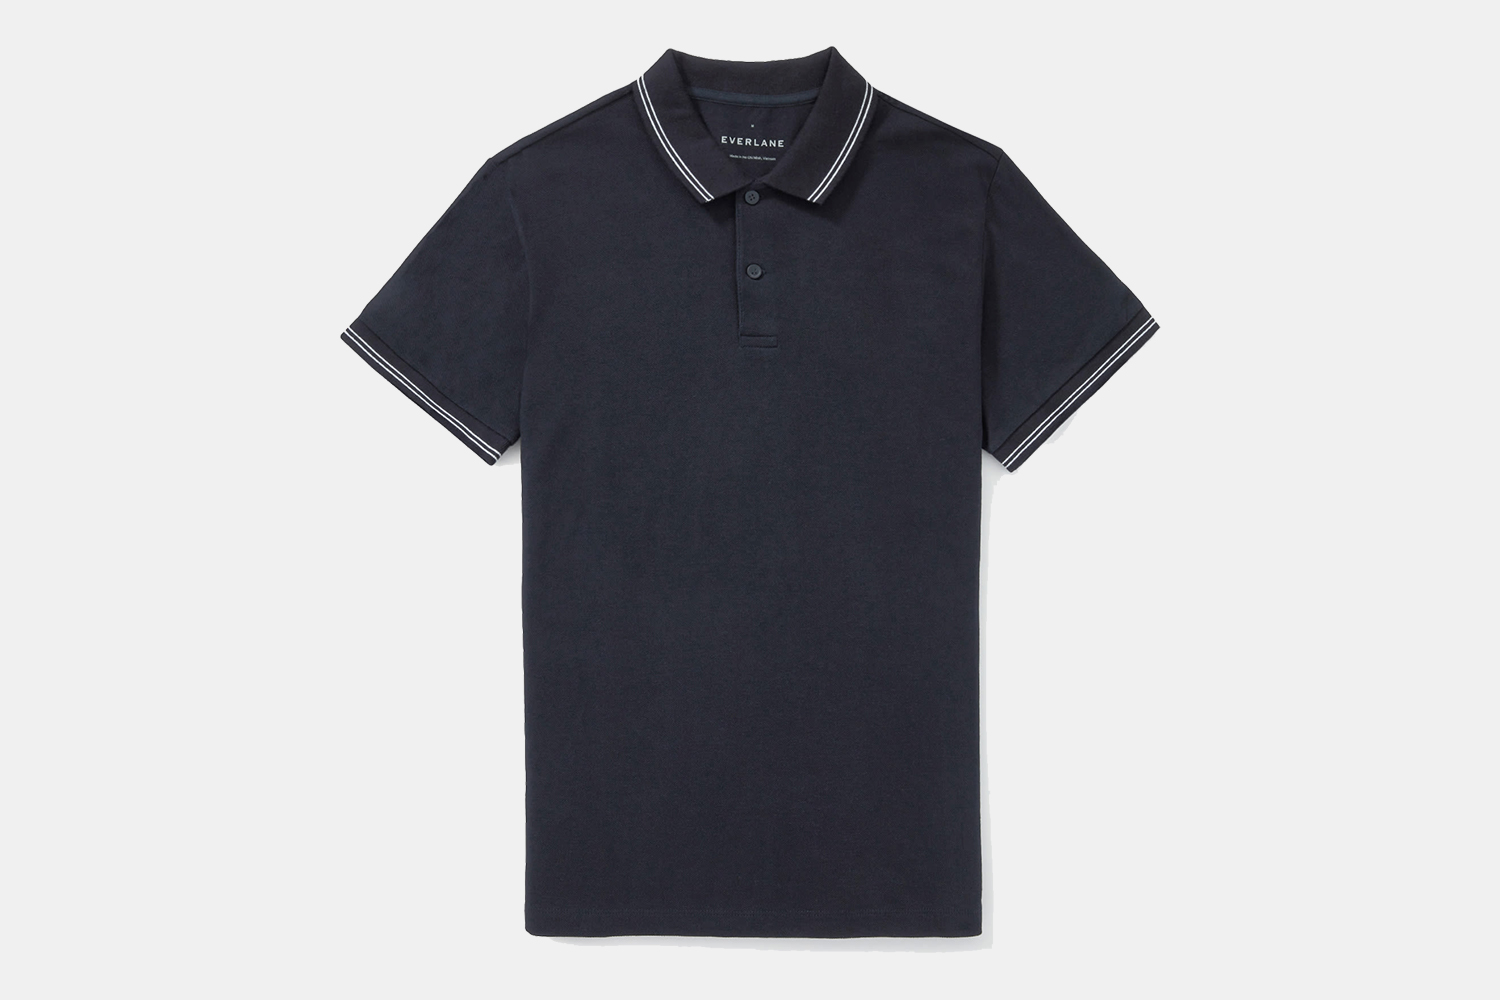 Everlane Men's Pique Polo Shirt